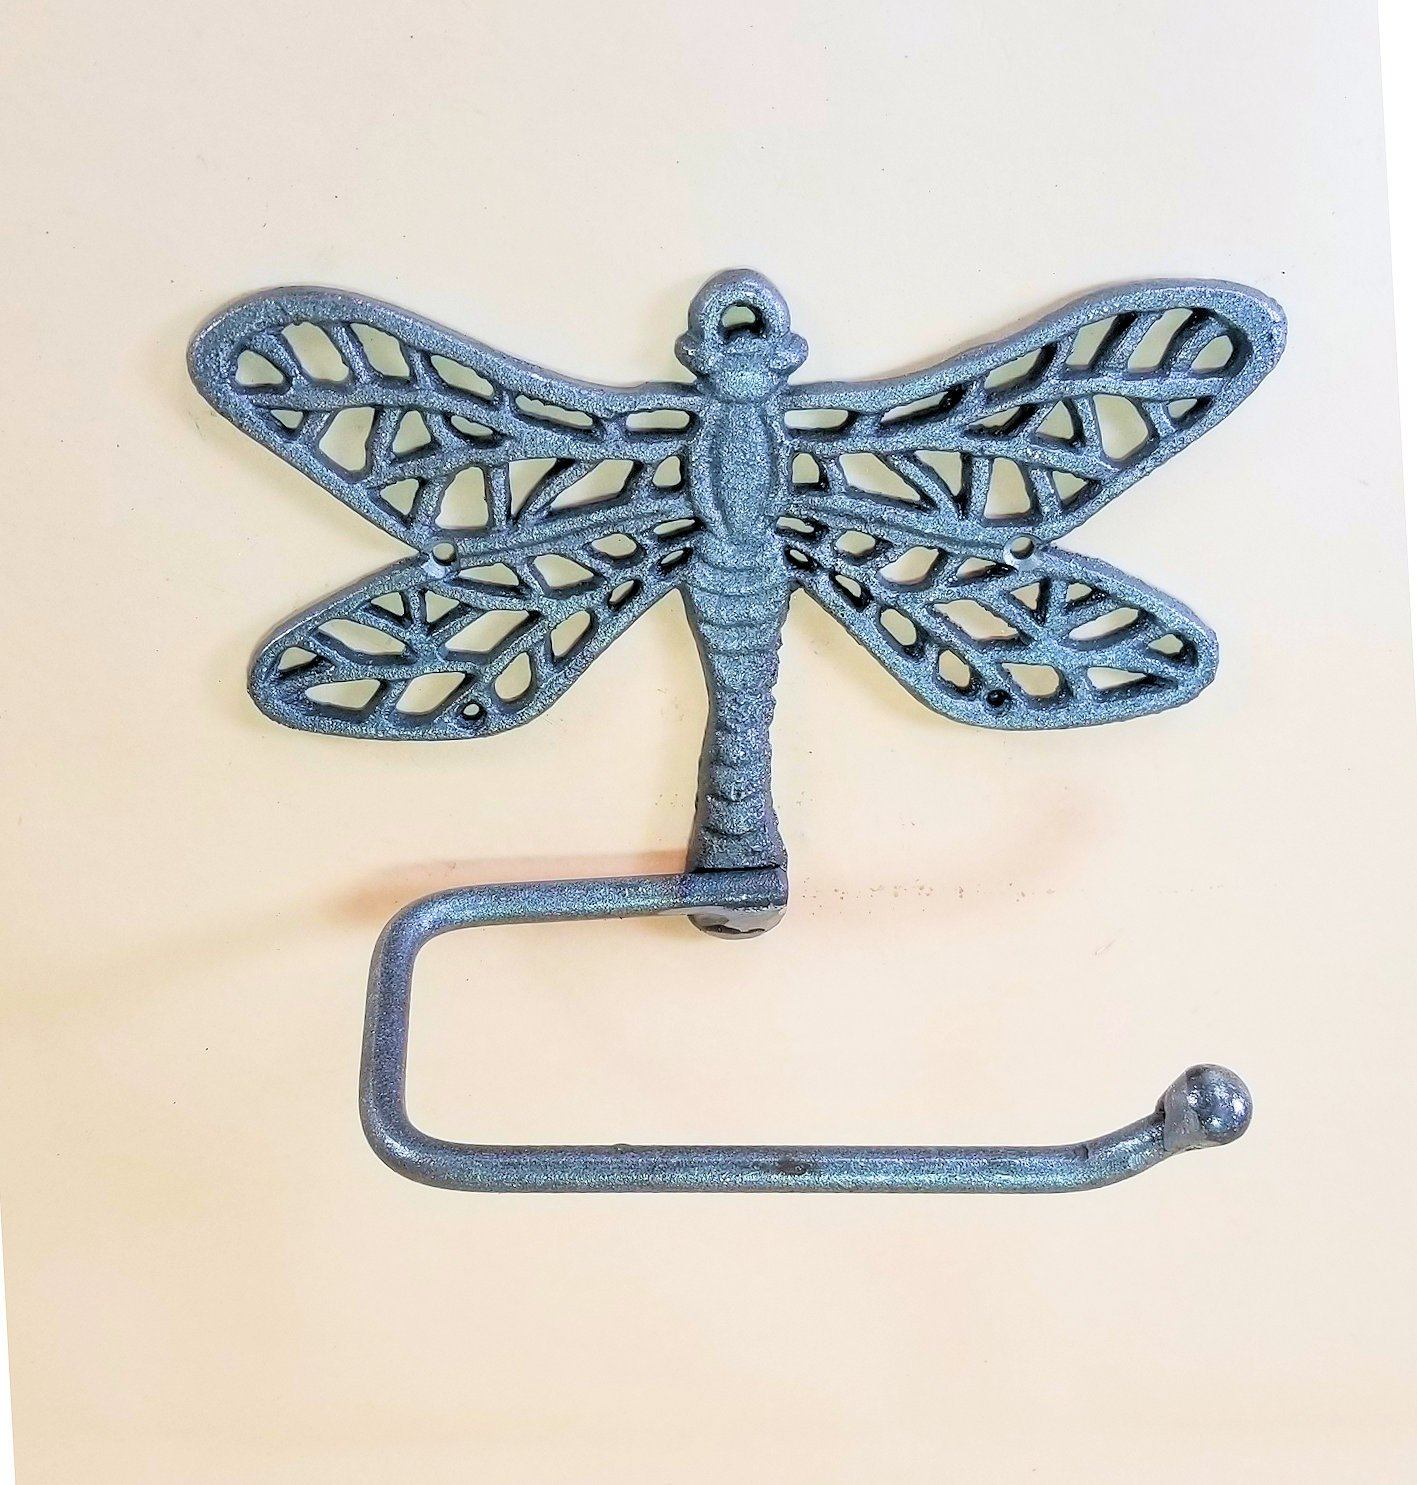 Cast Iron Dragonfly Bathroom Accessory set bath accessories Carvers Olde Iron